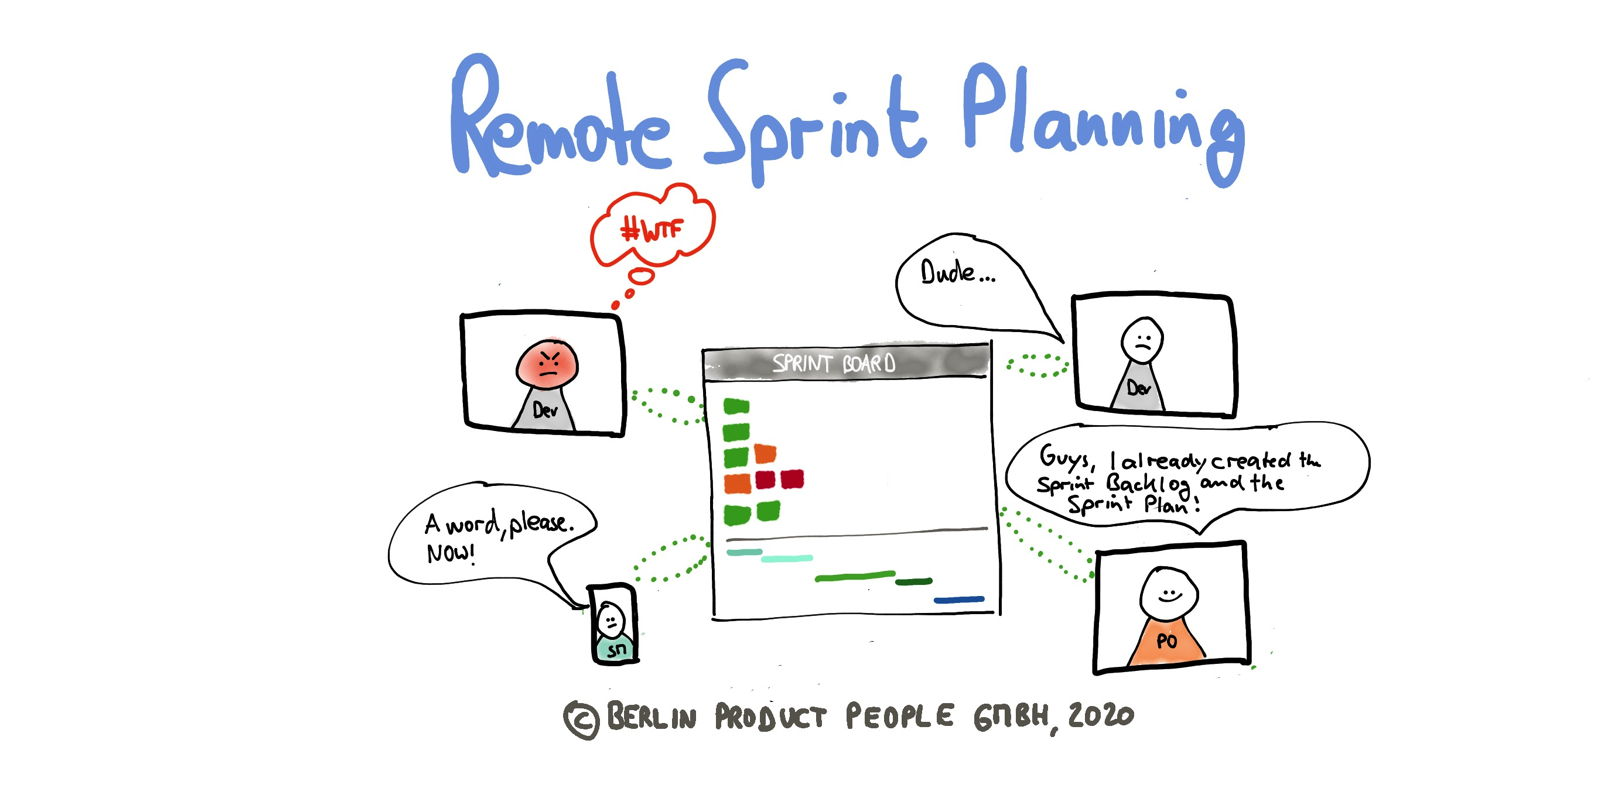 Remote Sprint Planning with a Distributed Team